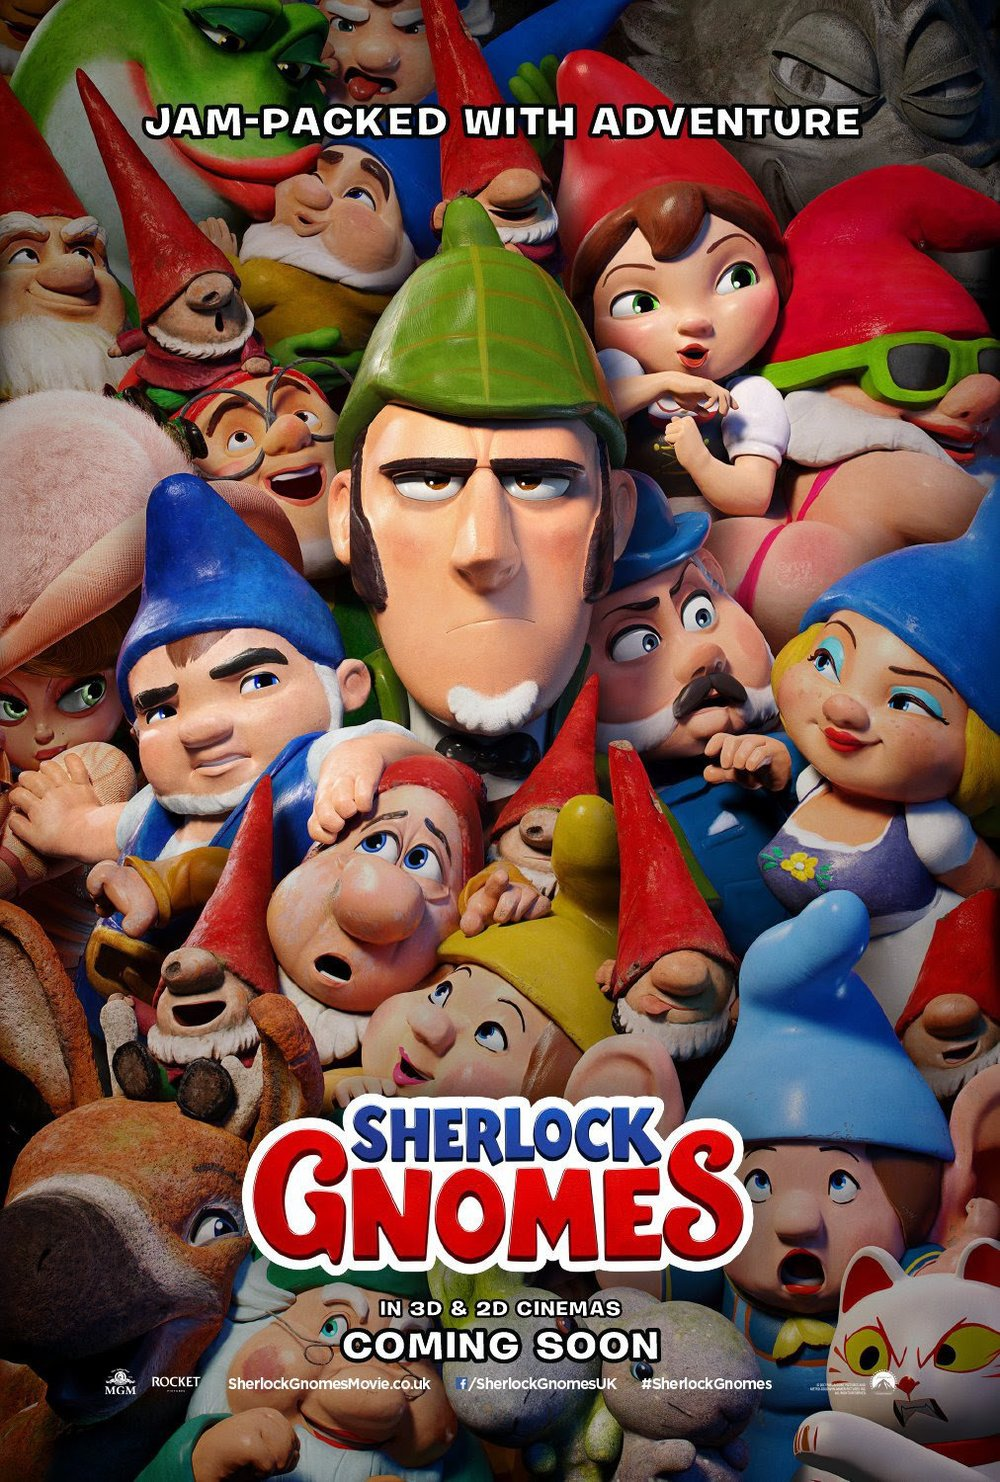 Sherlock Gnomes Movie Poster.jpg